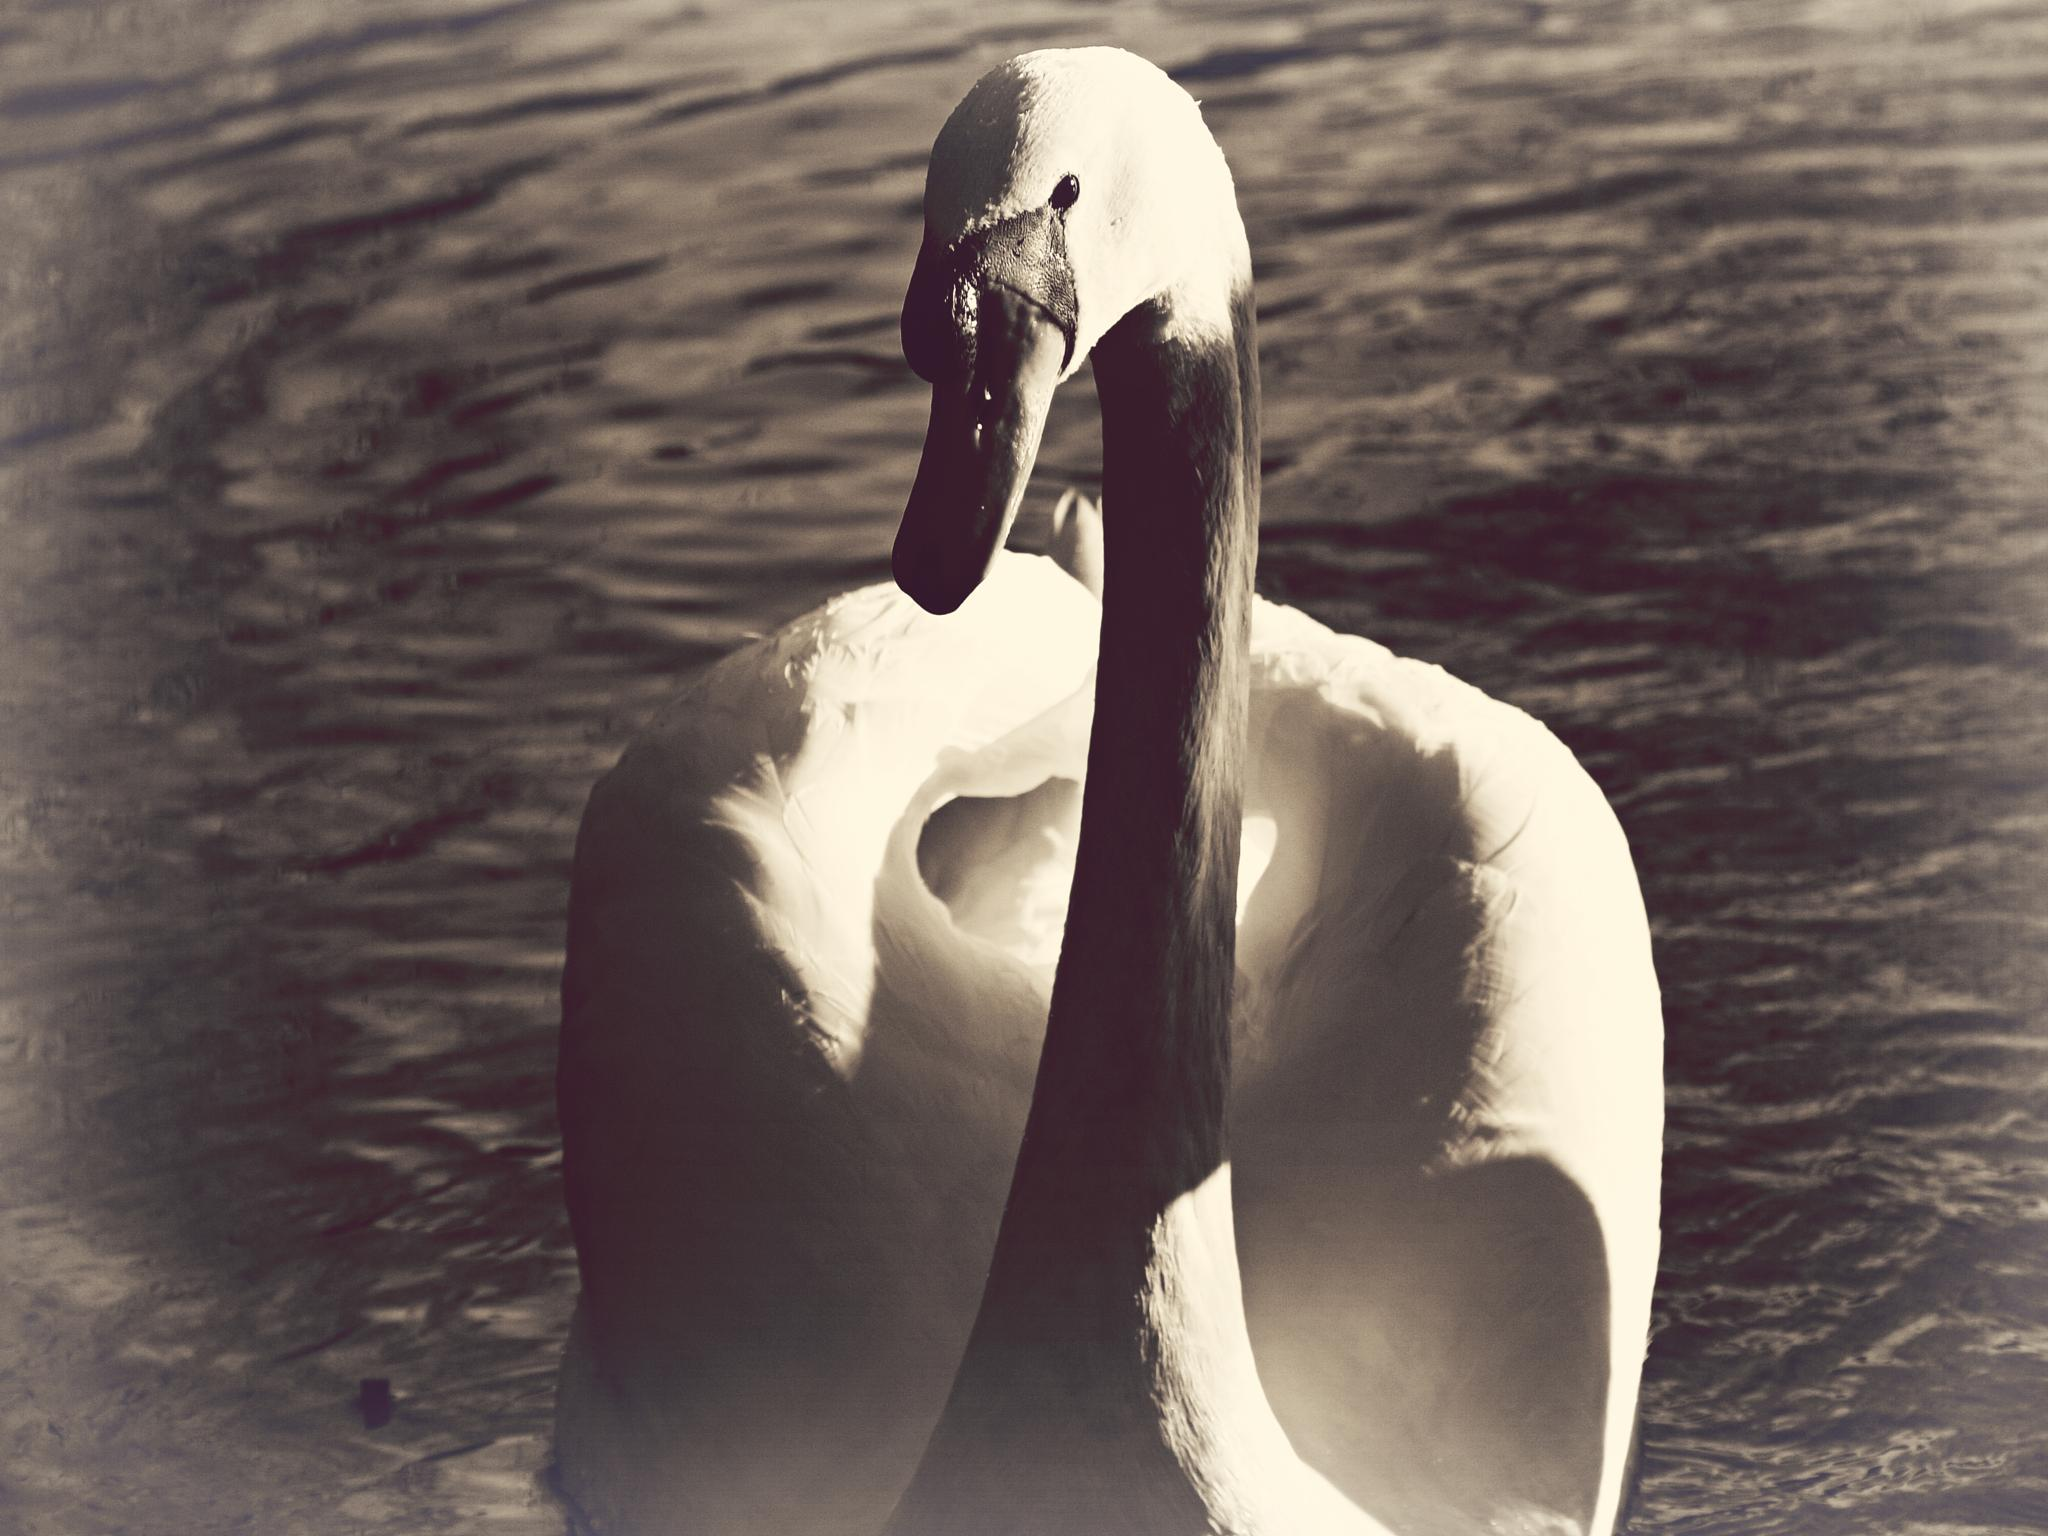 Swan by Tim Durrant